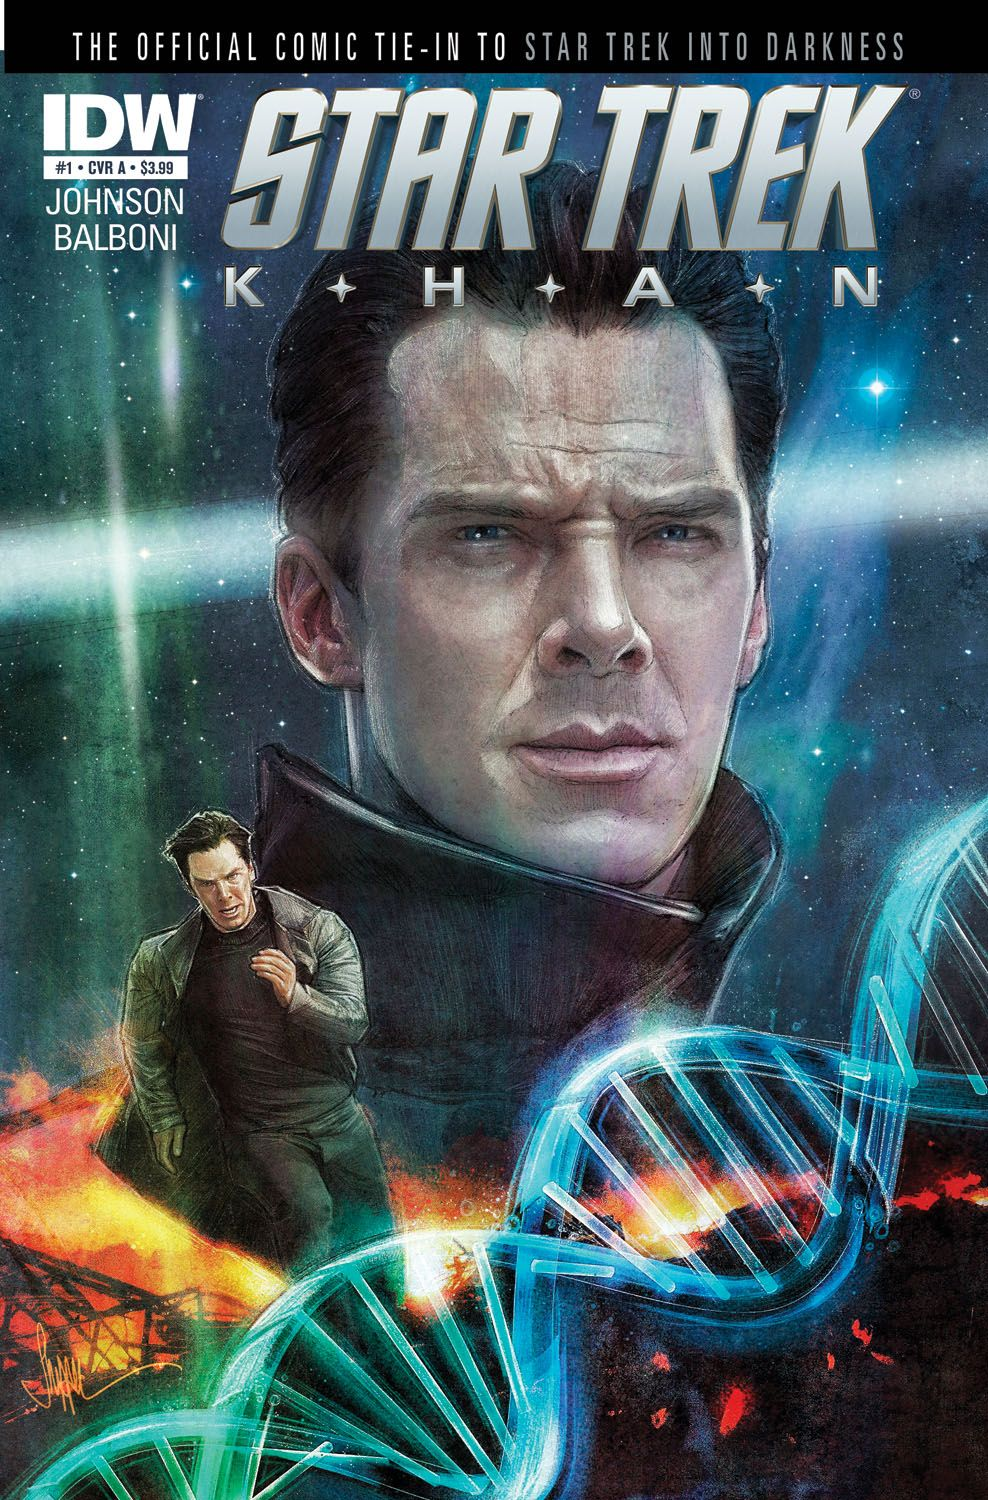 Star Trek: Khan #1 (of 5)—SPOTLIGHT Don't miss this all-new mini-series event overseen by Star Trek Into Darkness writer/producer Roberto Orci! Witness the shocking origin of Khan Noonien Singh from his earliest years through his rise to power during the epic Eugenics Wars! Behold the events that led to his escape from Earth aboard the Botany Bay! Learn the truth behind his re-awakening by Admiral Marcus and Section 31! It's the origin of Star Trek's greatest villain, only from IDW!